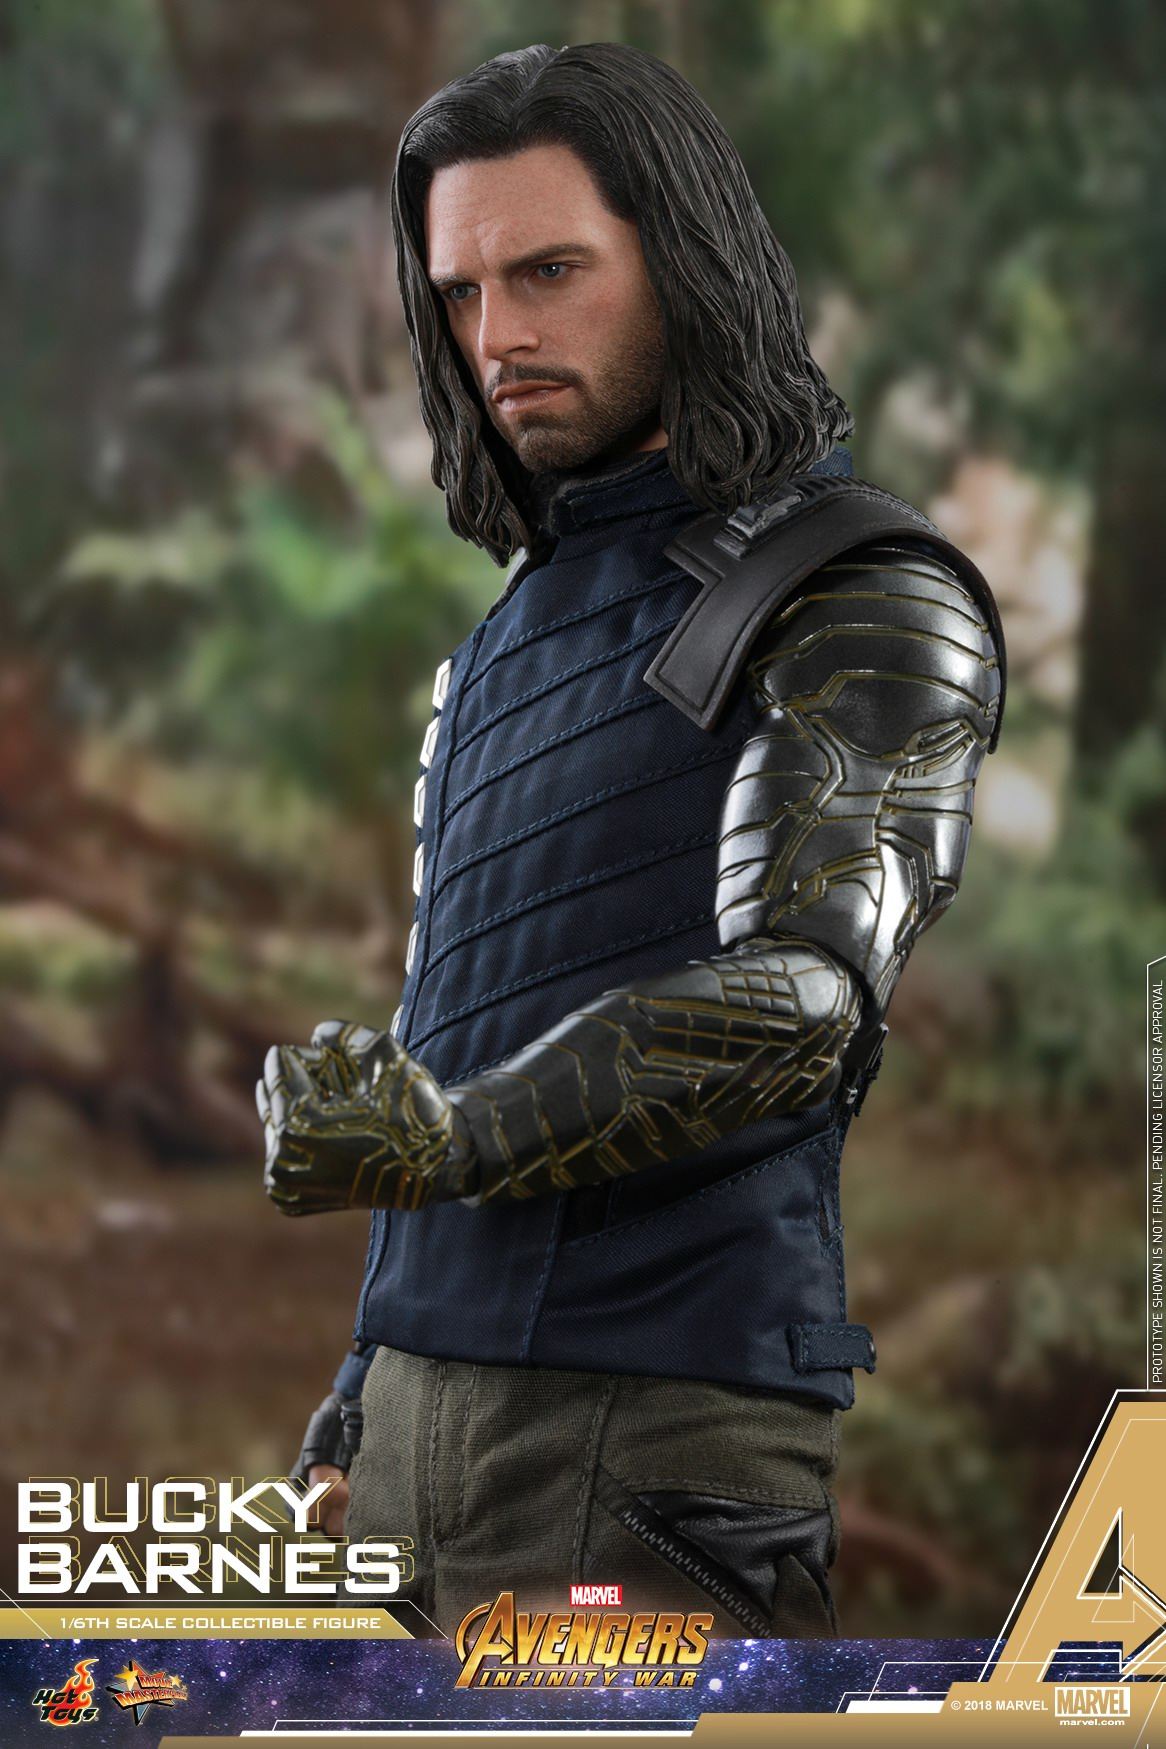 Hot-Toys-AIW-Bucky-Barnes-collectible-figure_PR9.jpg